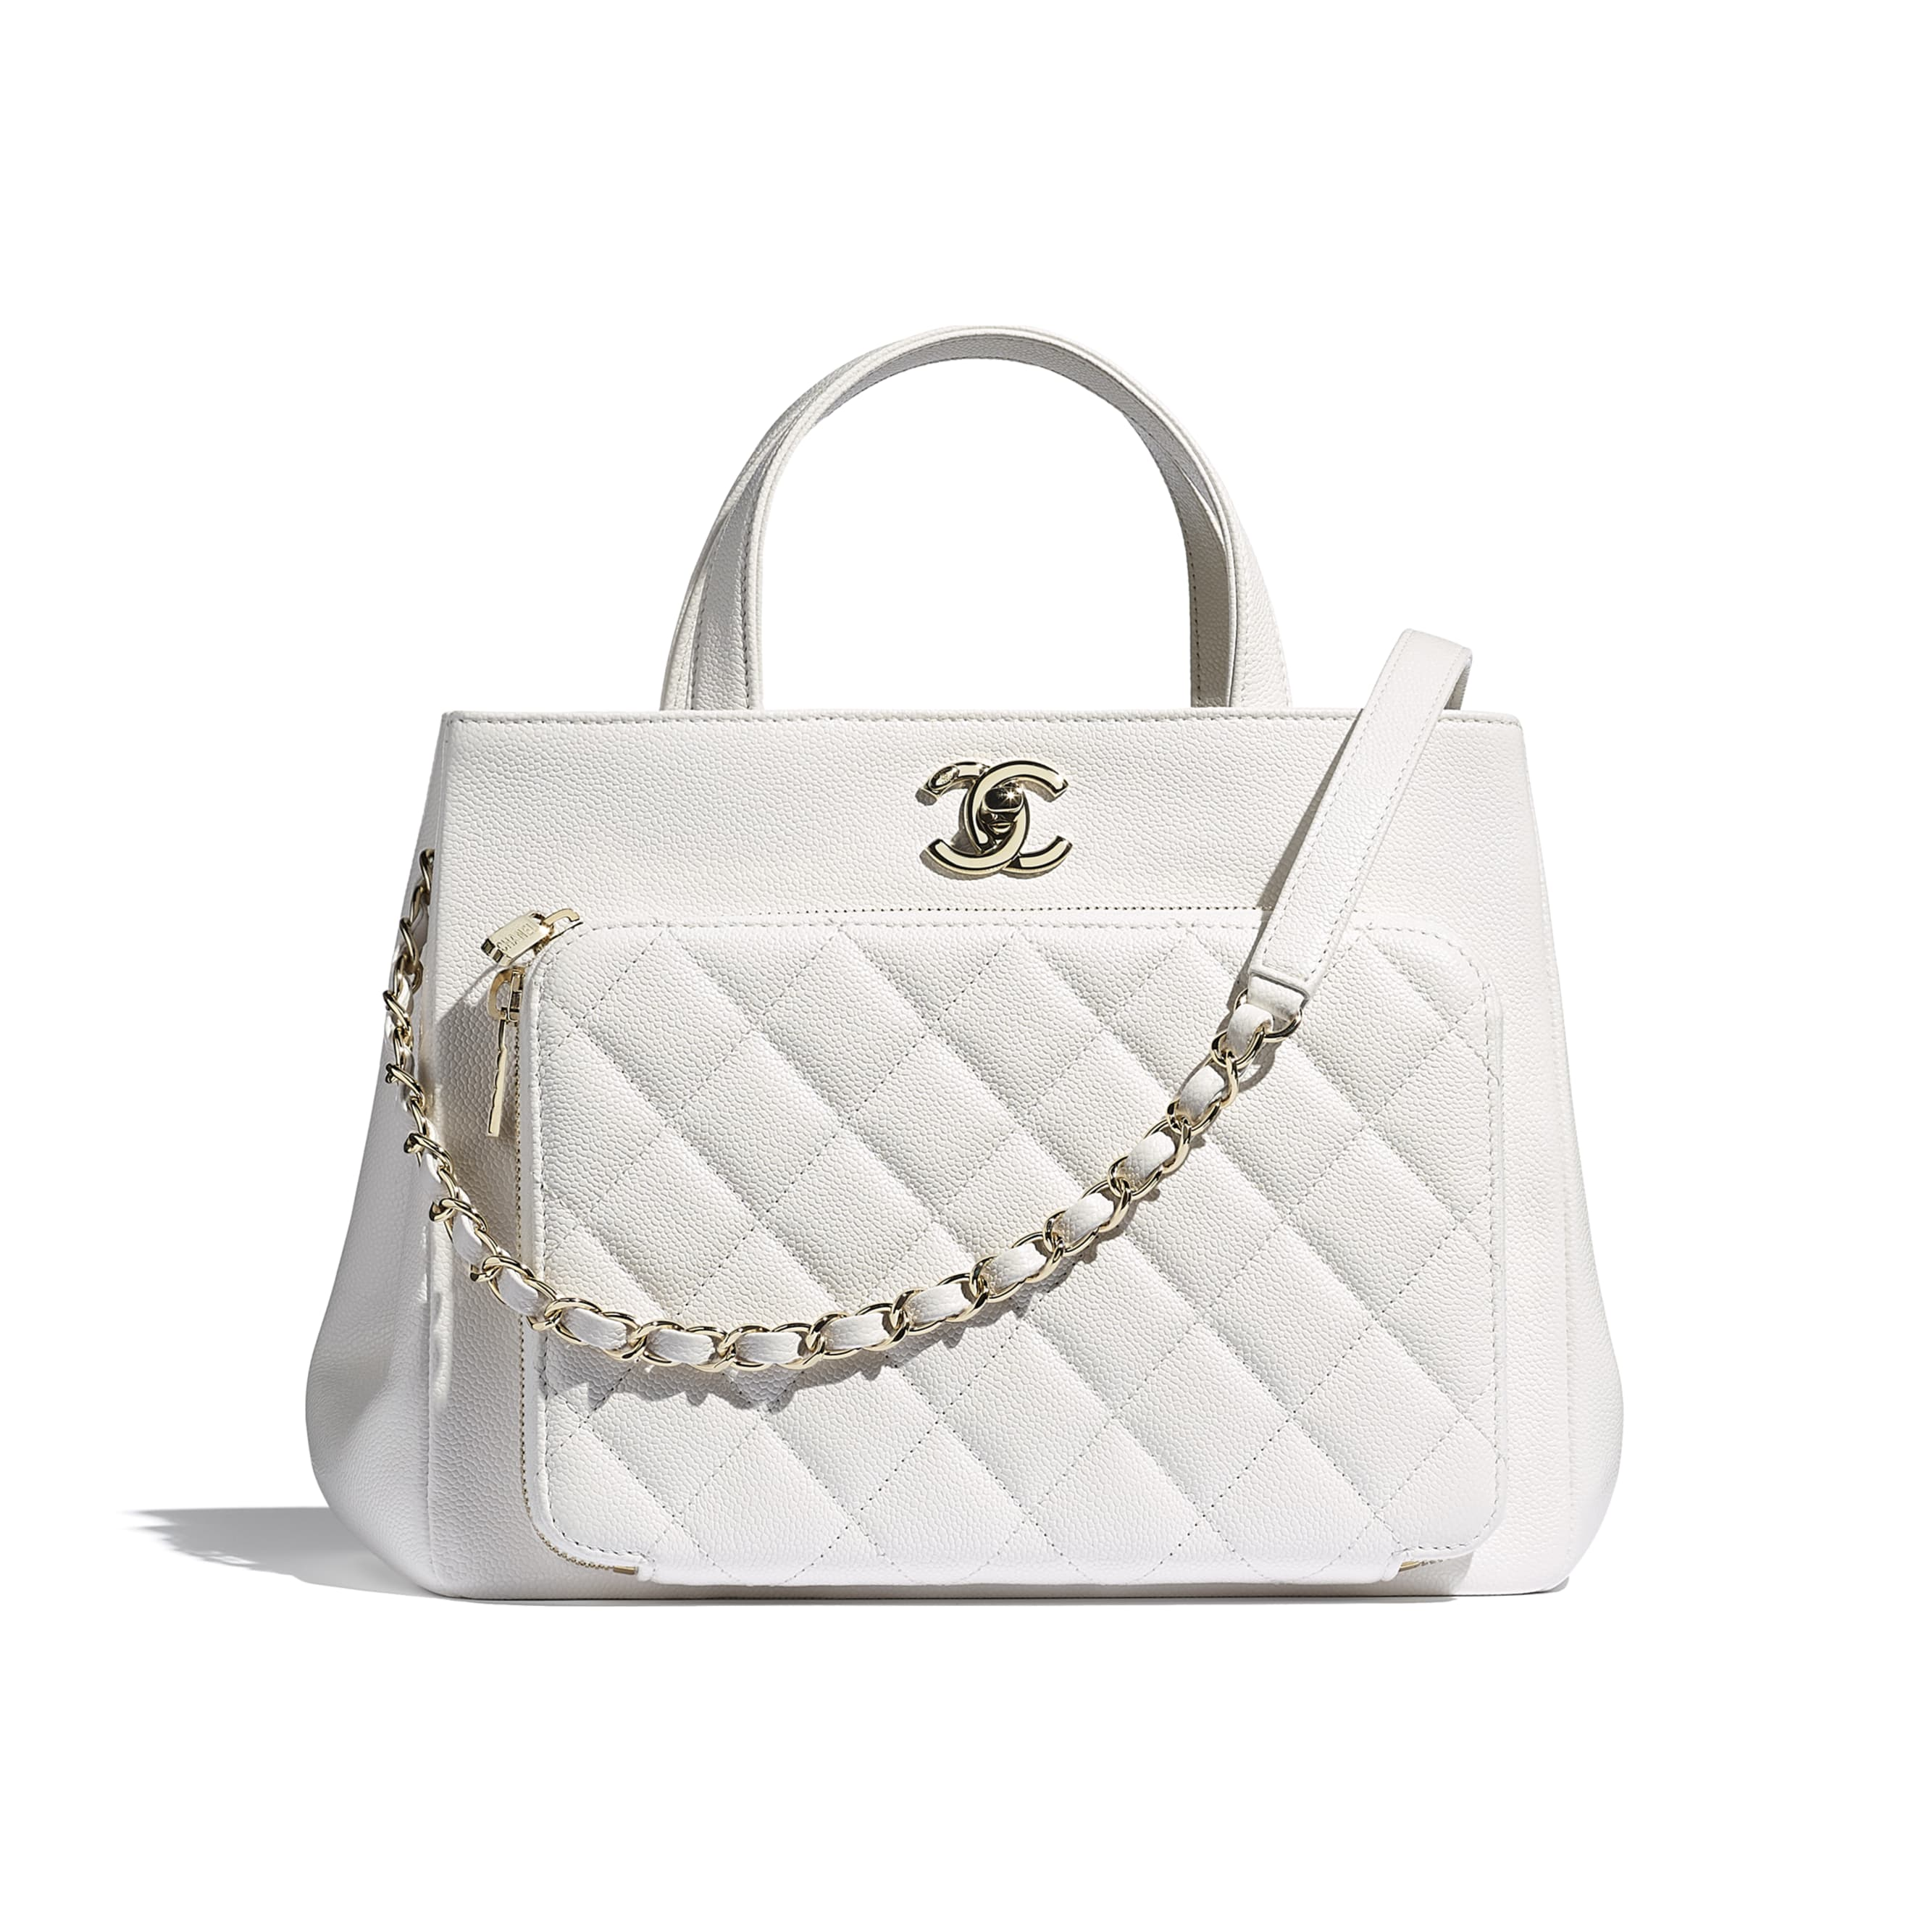 Shopping Bag - White - Grained Calfskin & Gold-Tone Metal - CHANEL - Default view - see standard sized version